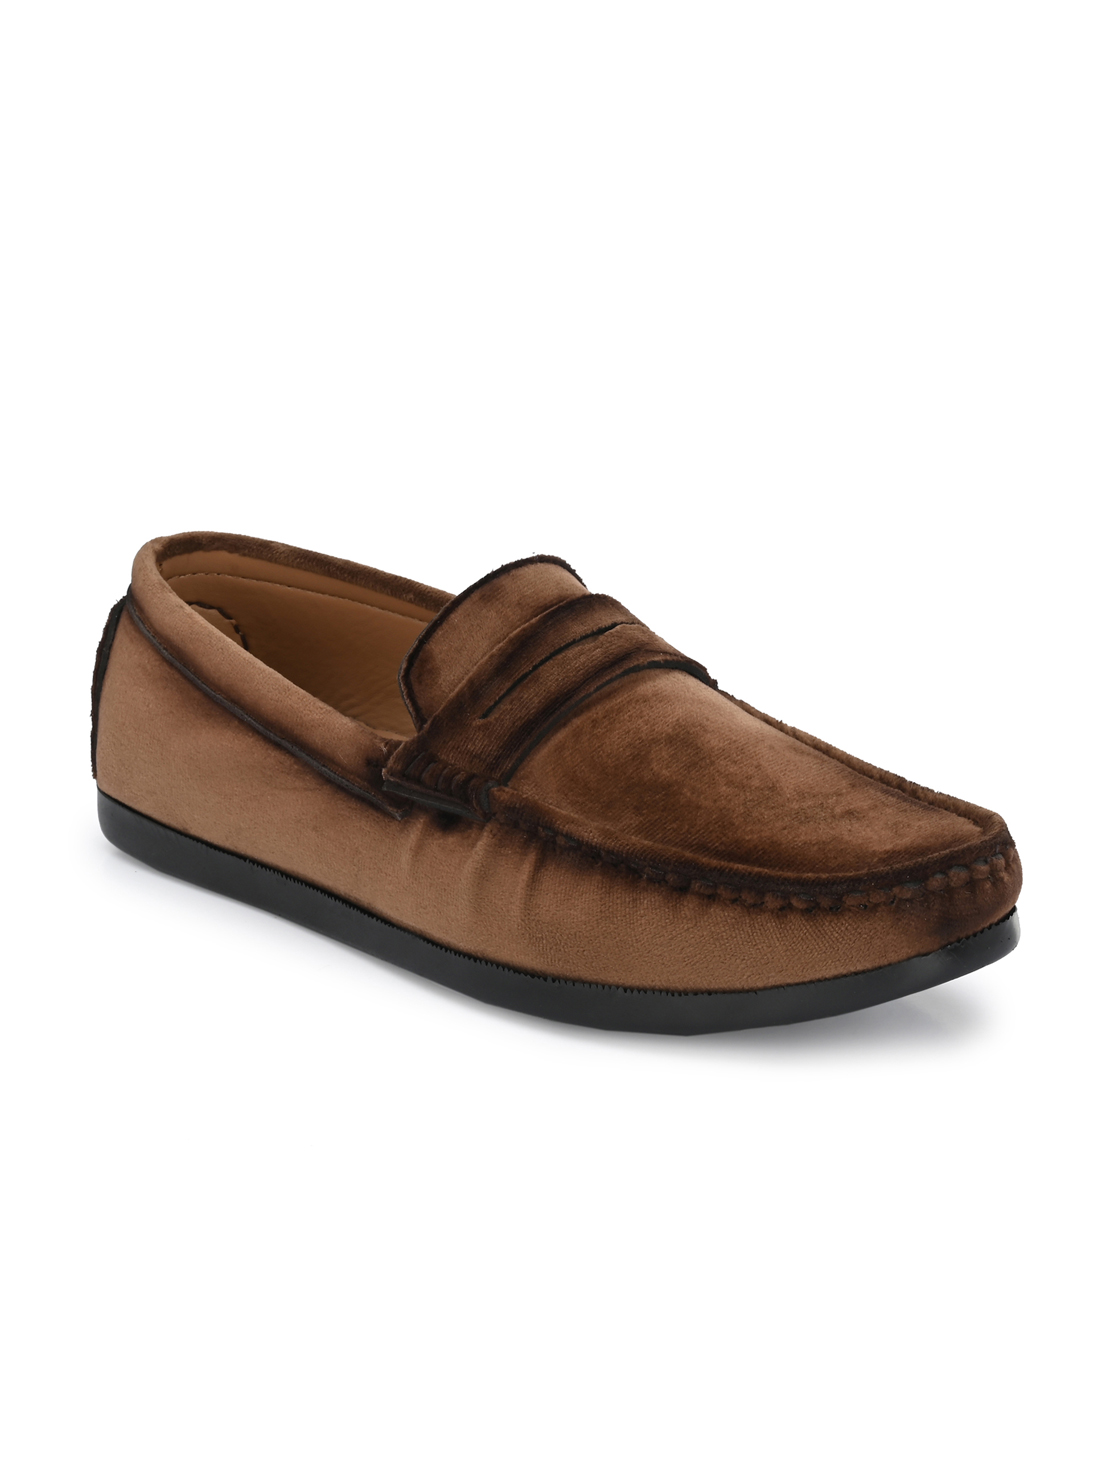 Guava   Guava Charming Velvet Casual Loafer Shoes - Brown